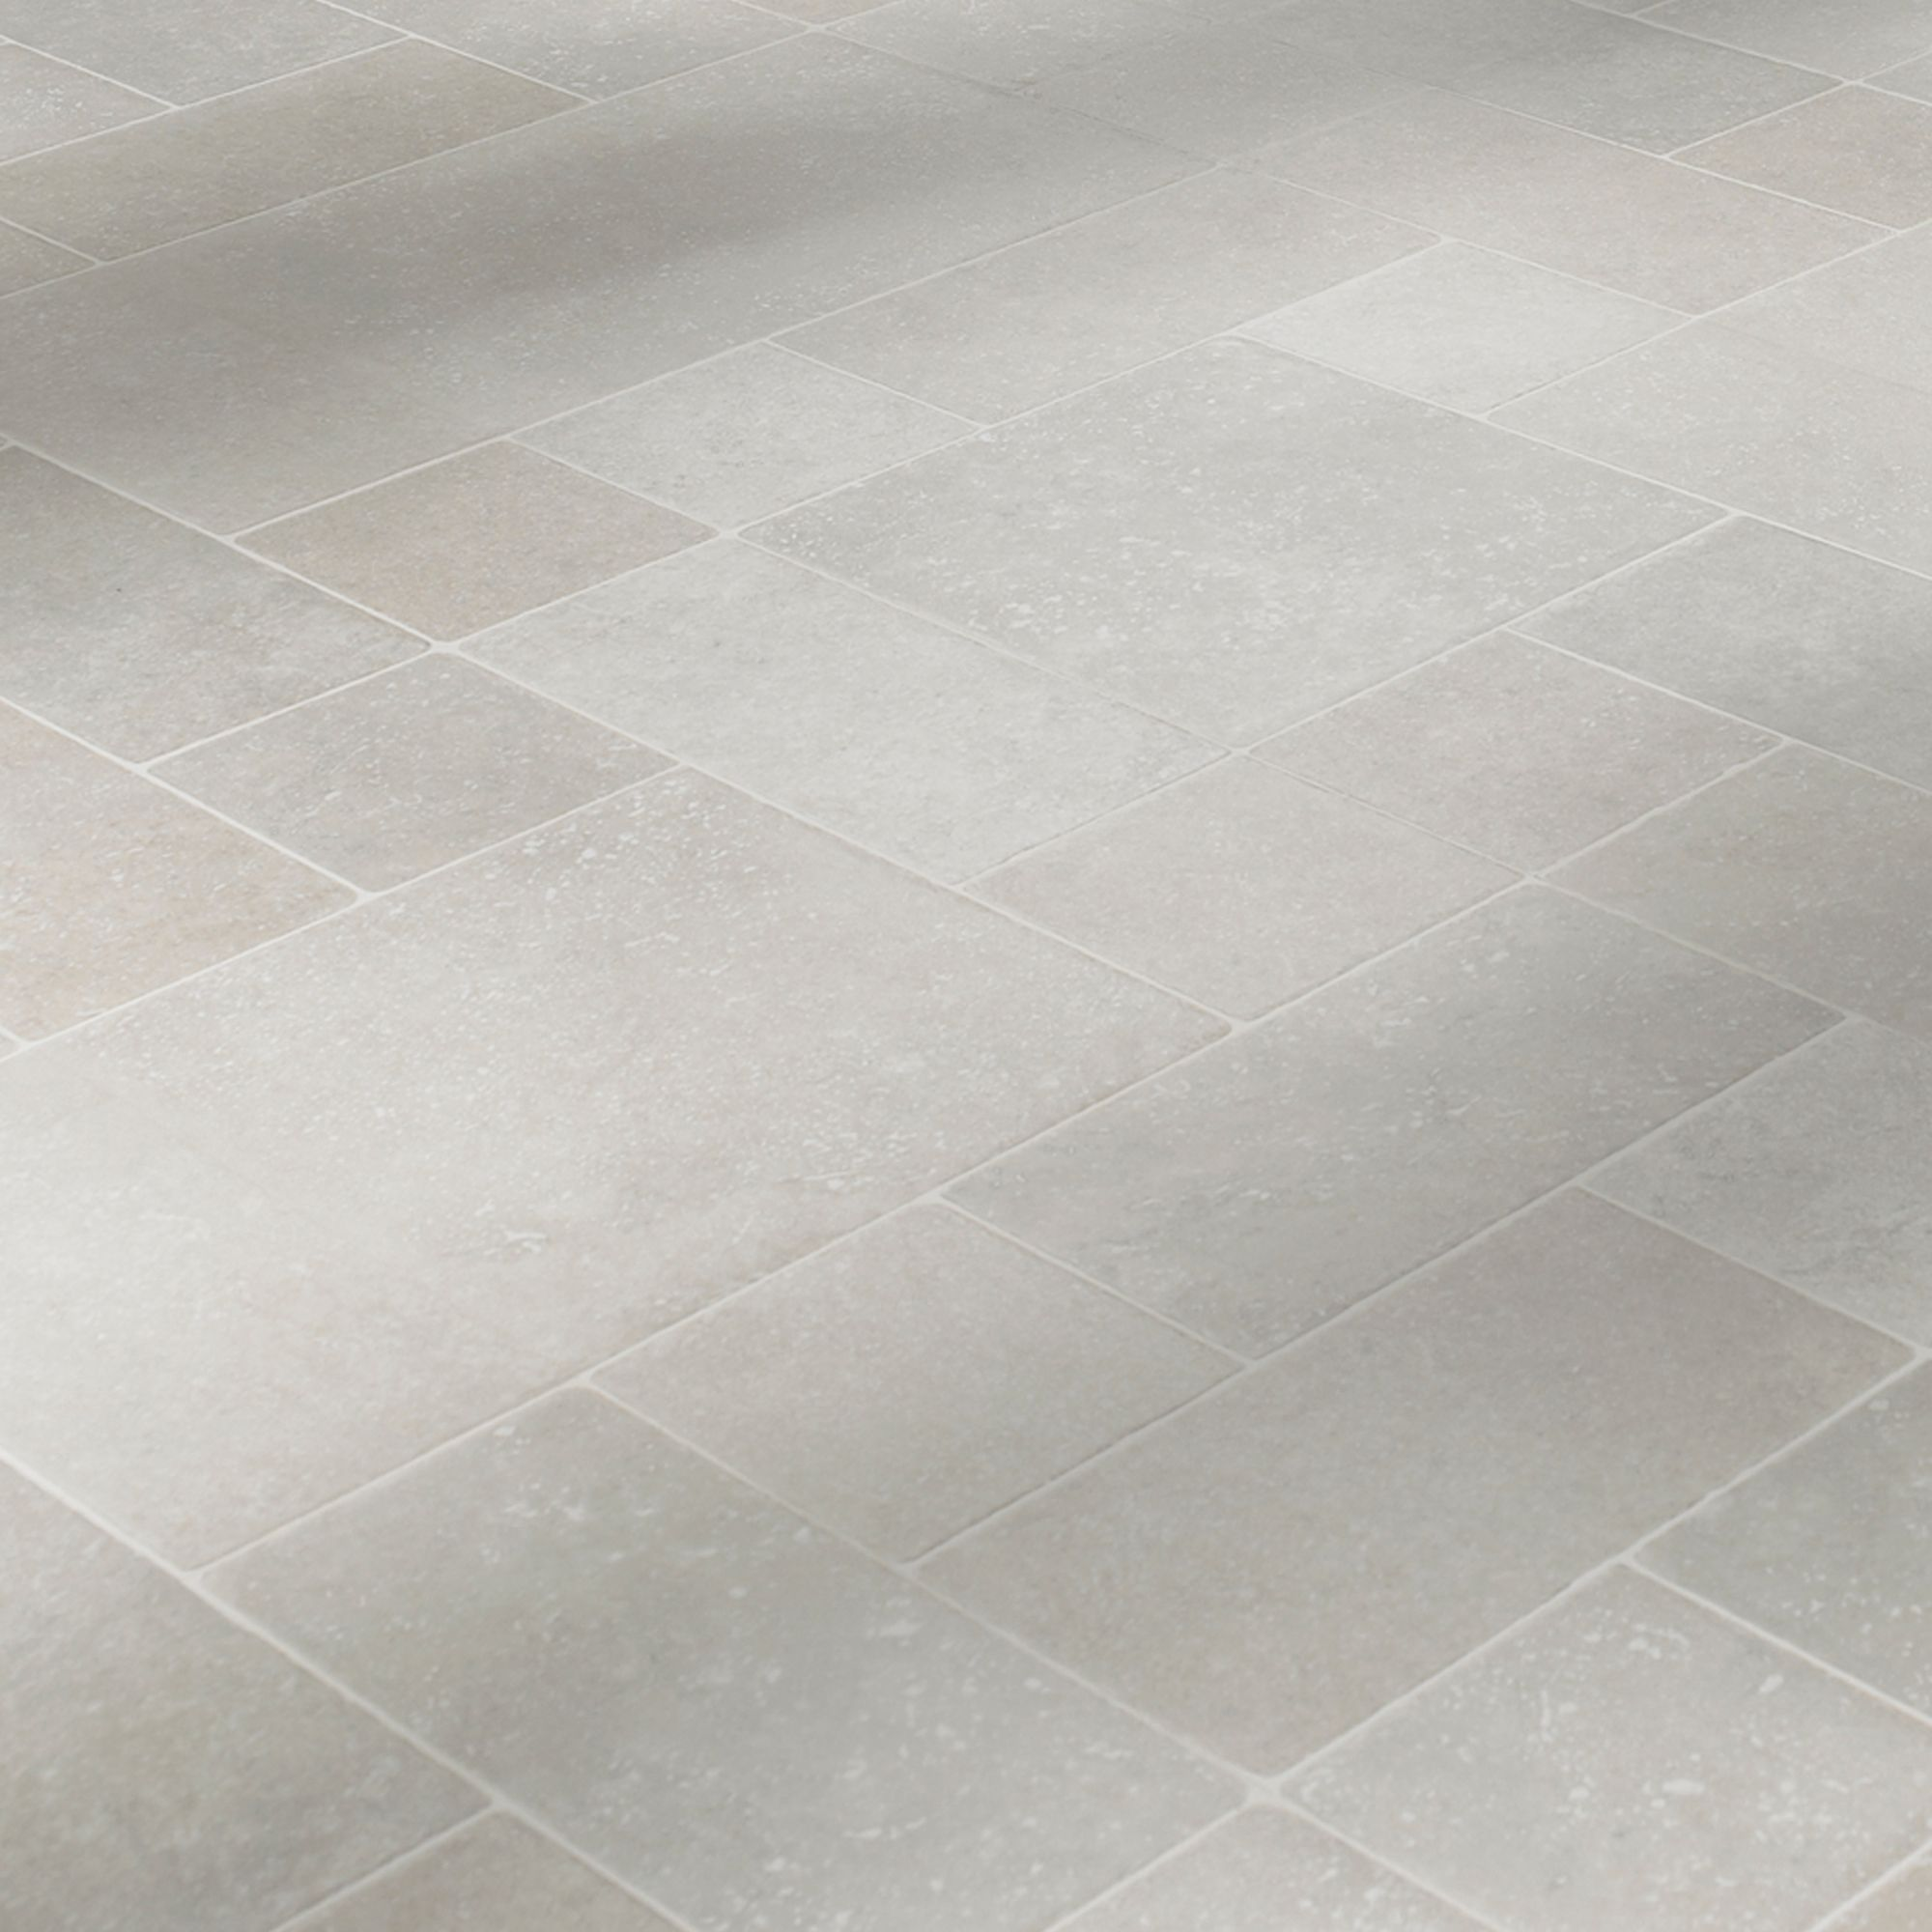 Barbarita grey limestone effect laminate flooring m for Grey bathroom laminate flooring